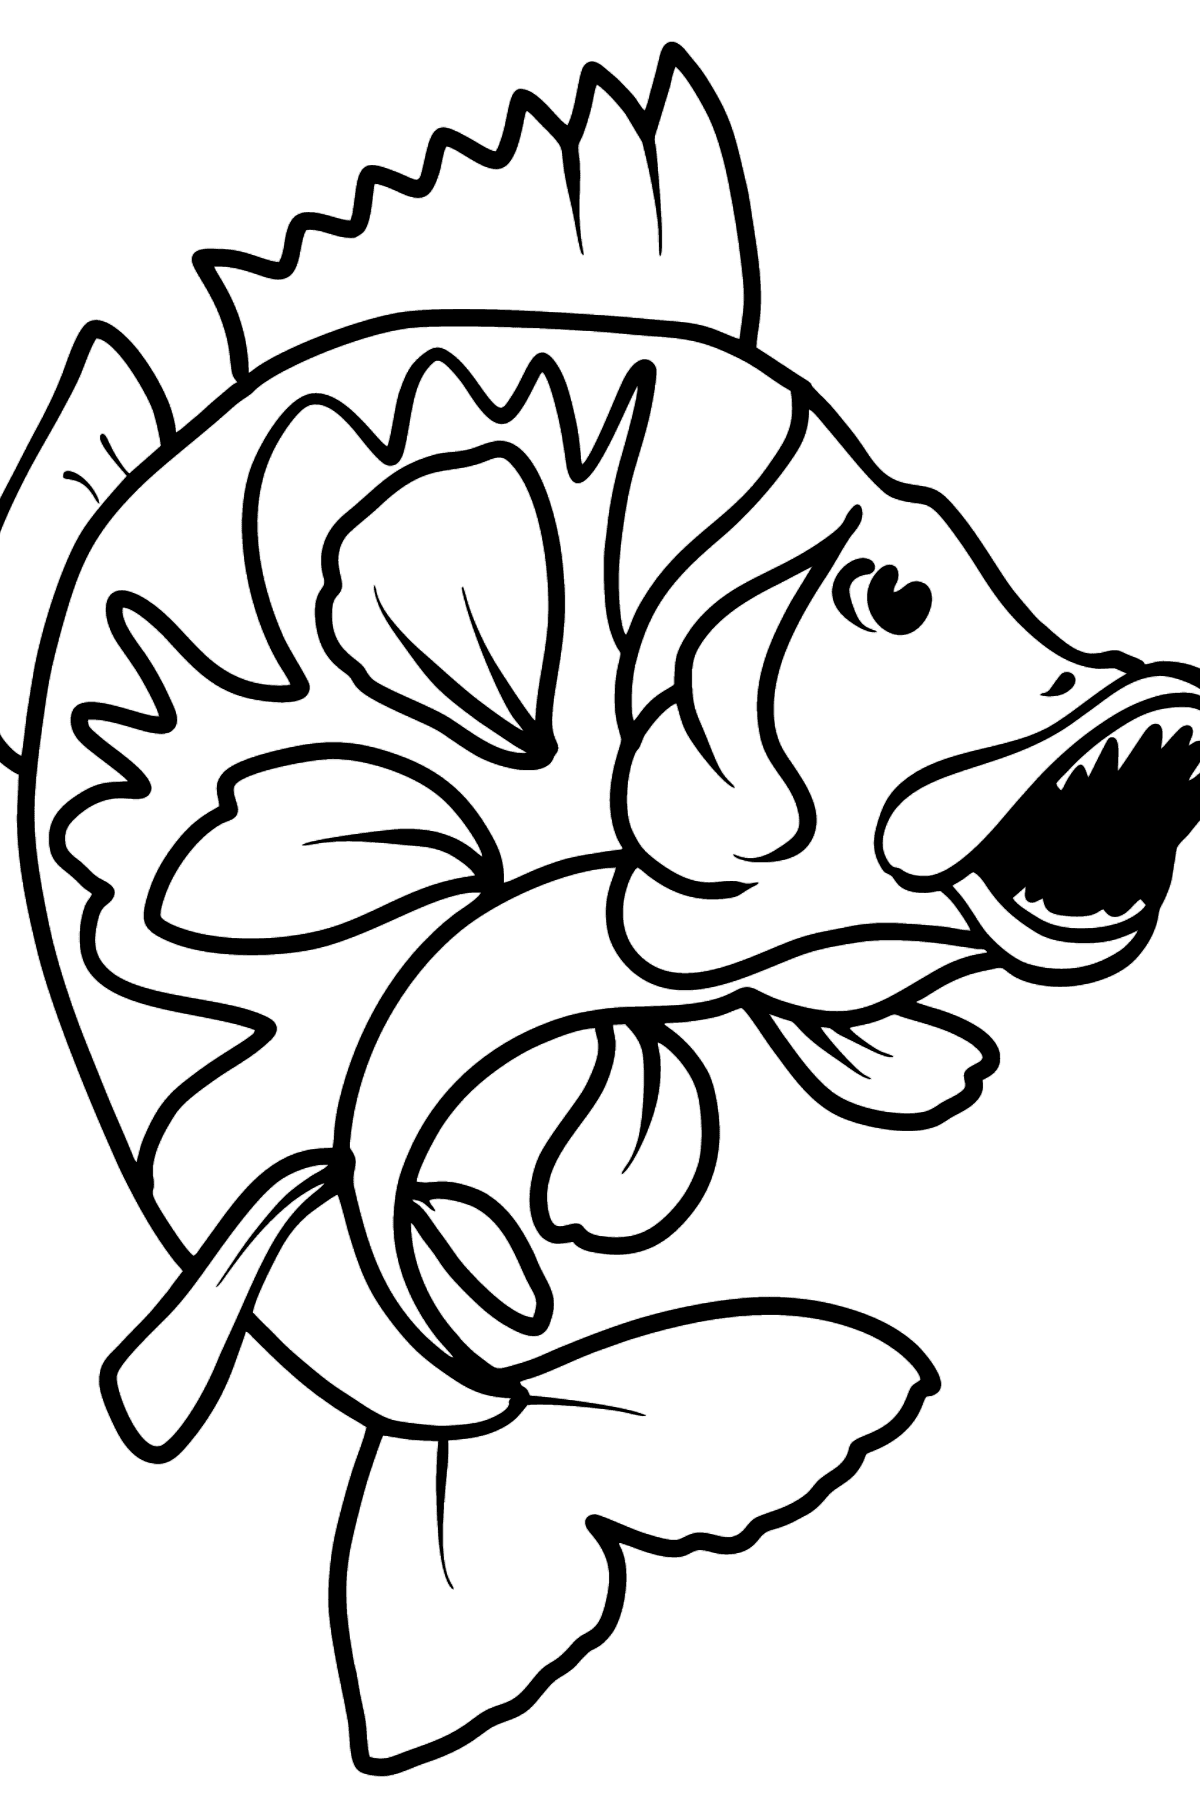 Perch coloring page - Coloring Pages for Kids